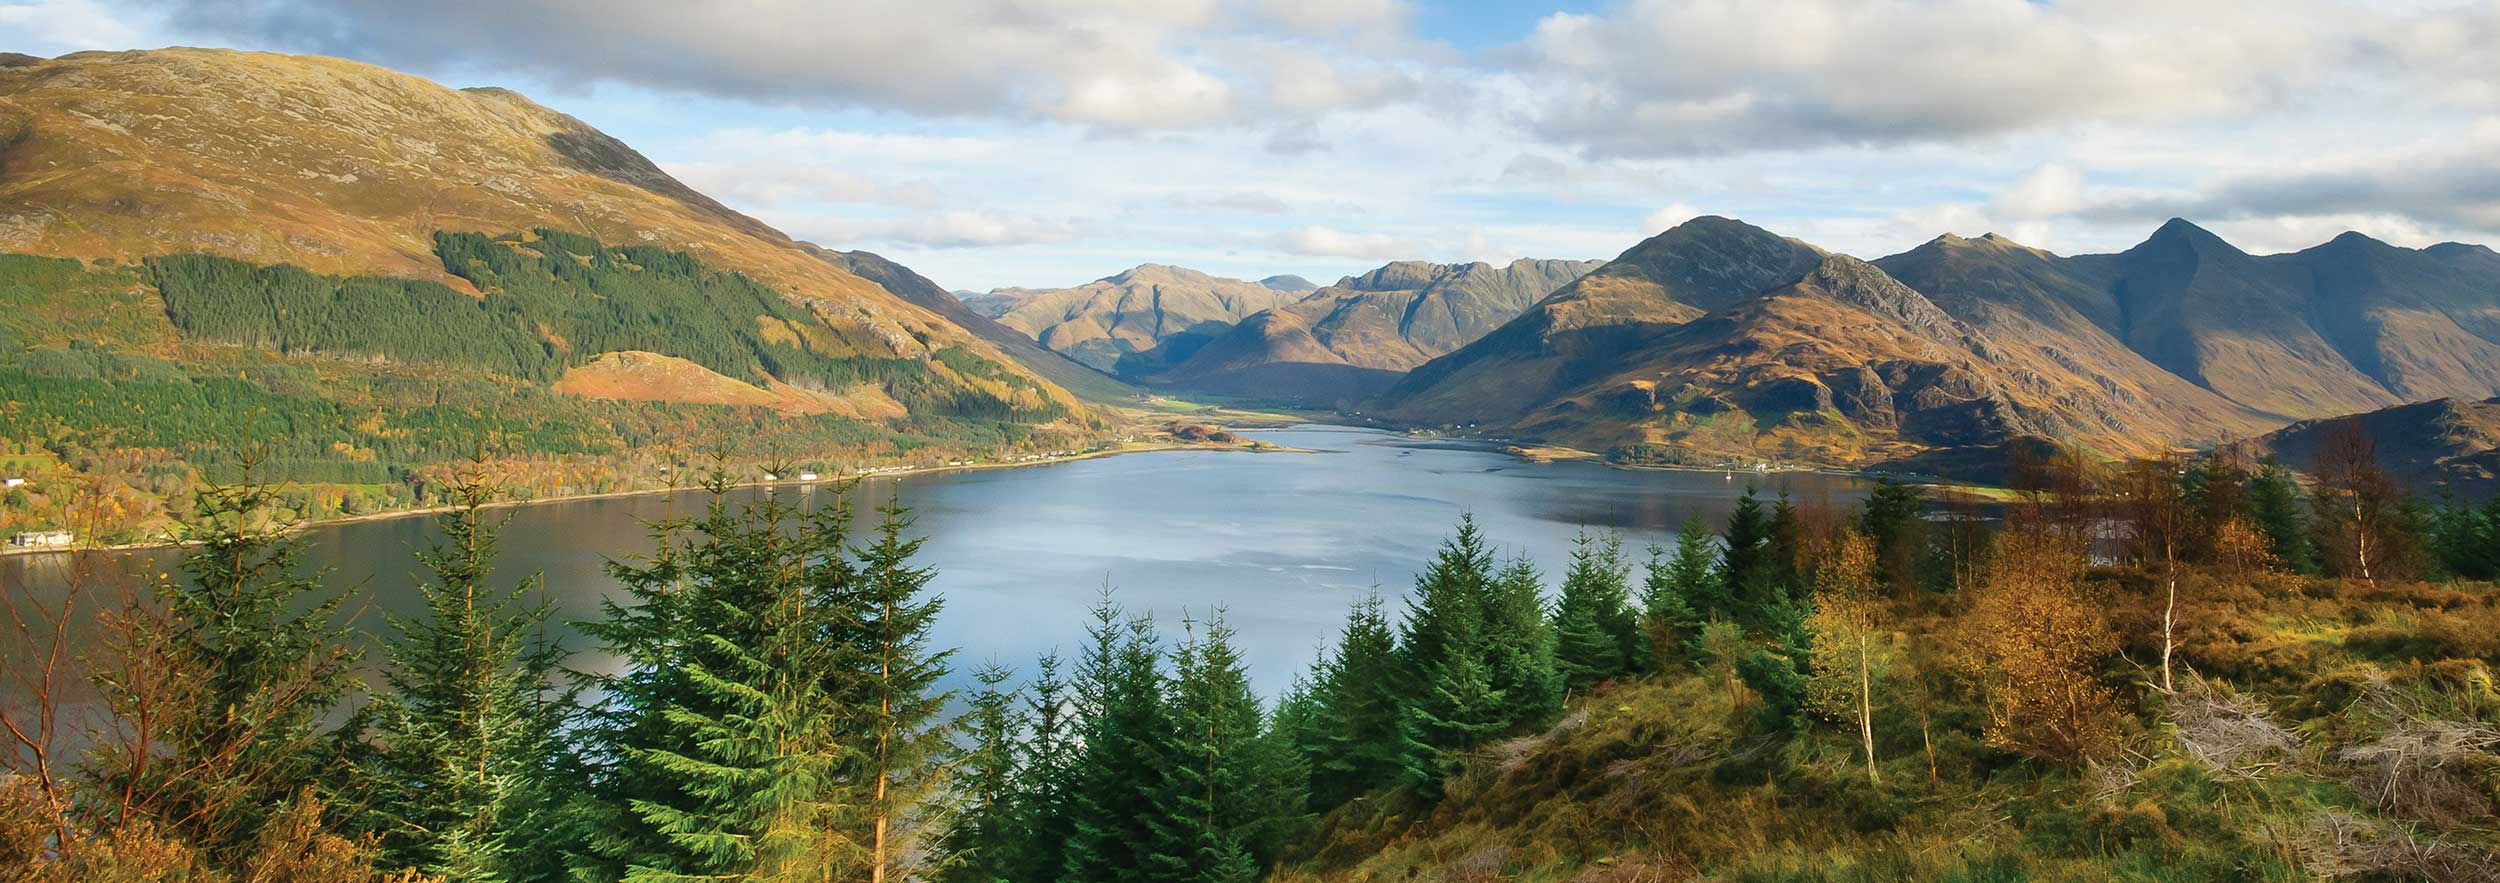 Fall Themed Wallpapers Cartoon Top Scotland Backgrounds Download Picture Of A Awesome